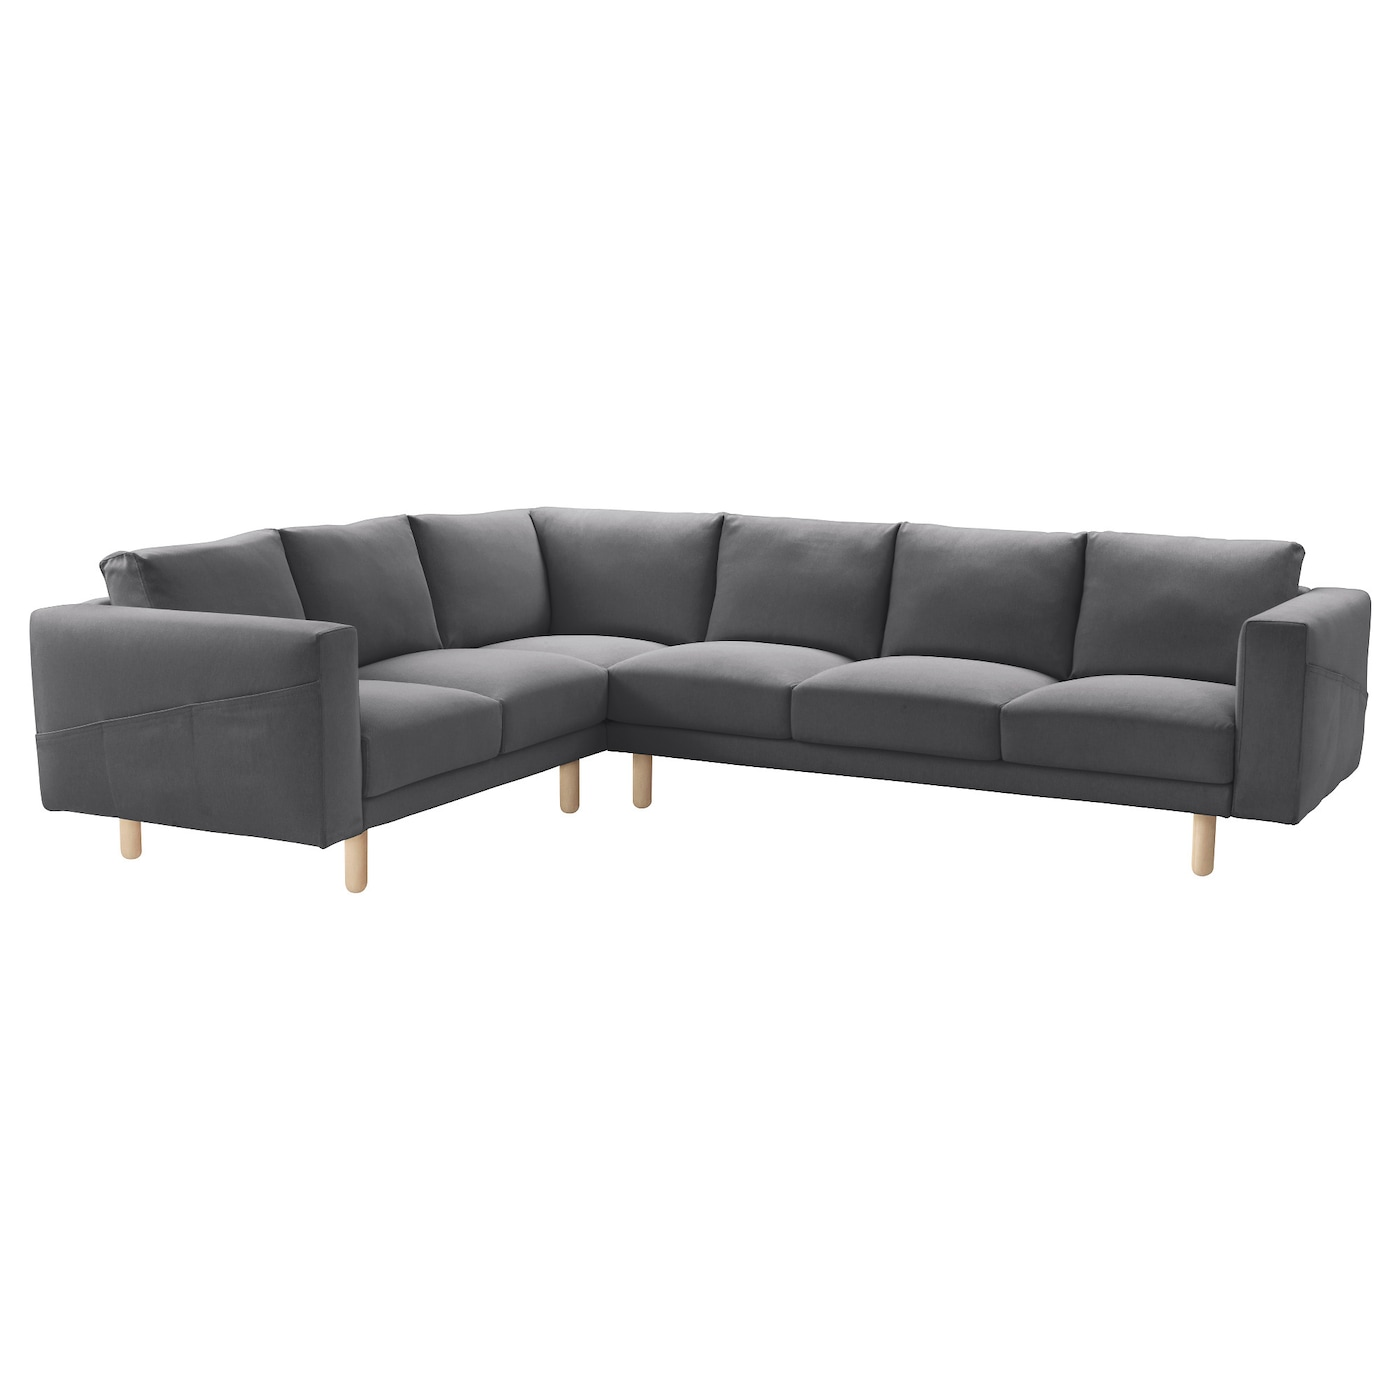 Small Corner Sofa No Arms: NORSBORG Corner Sofa, 5-seat Finnsta Dark Grey/birch